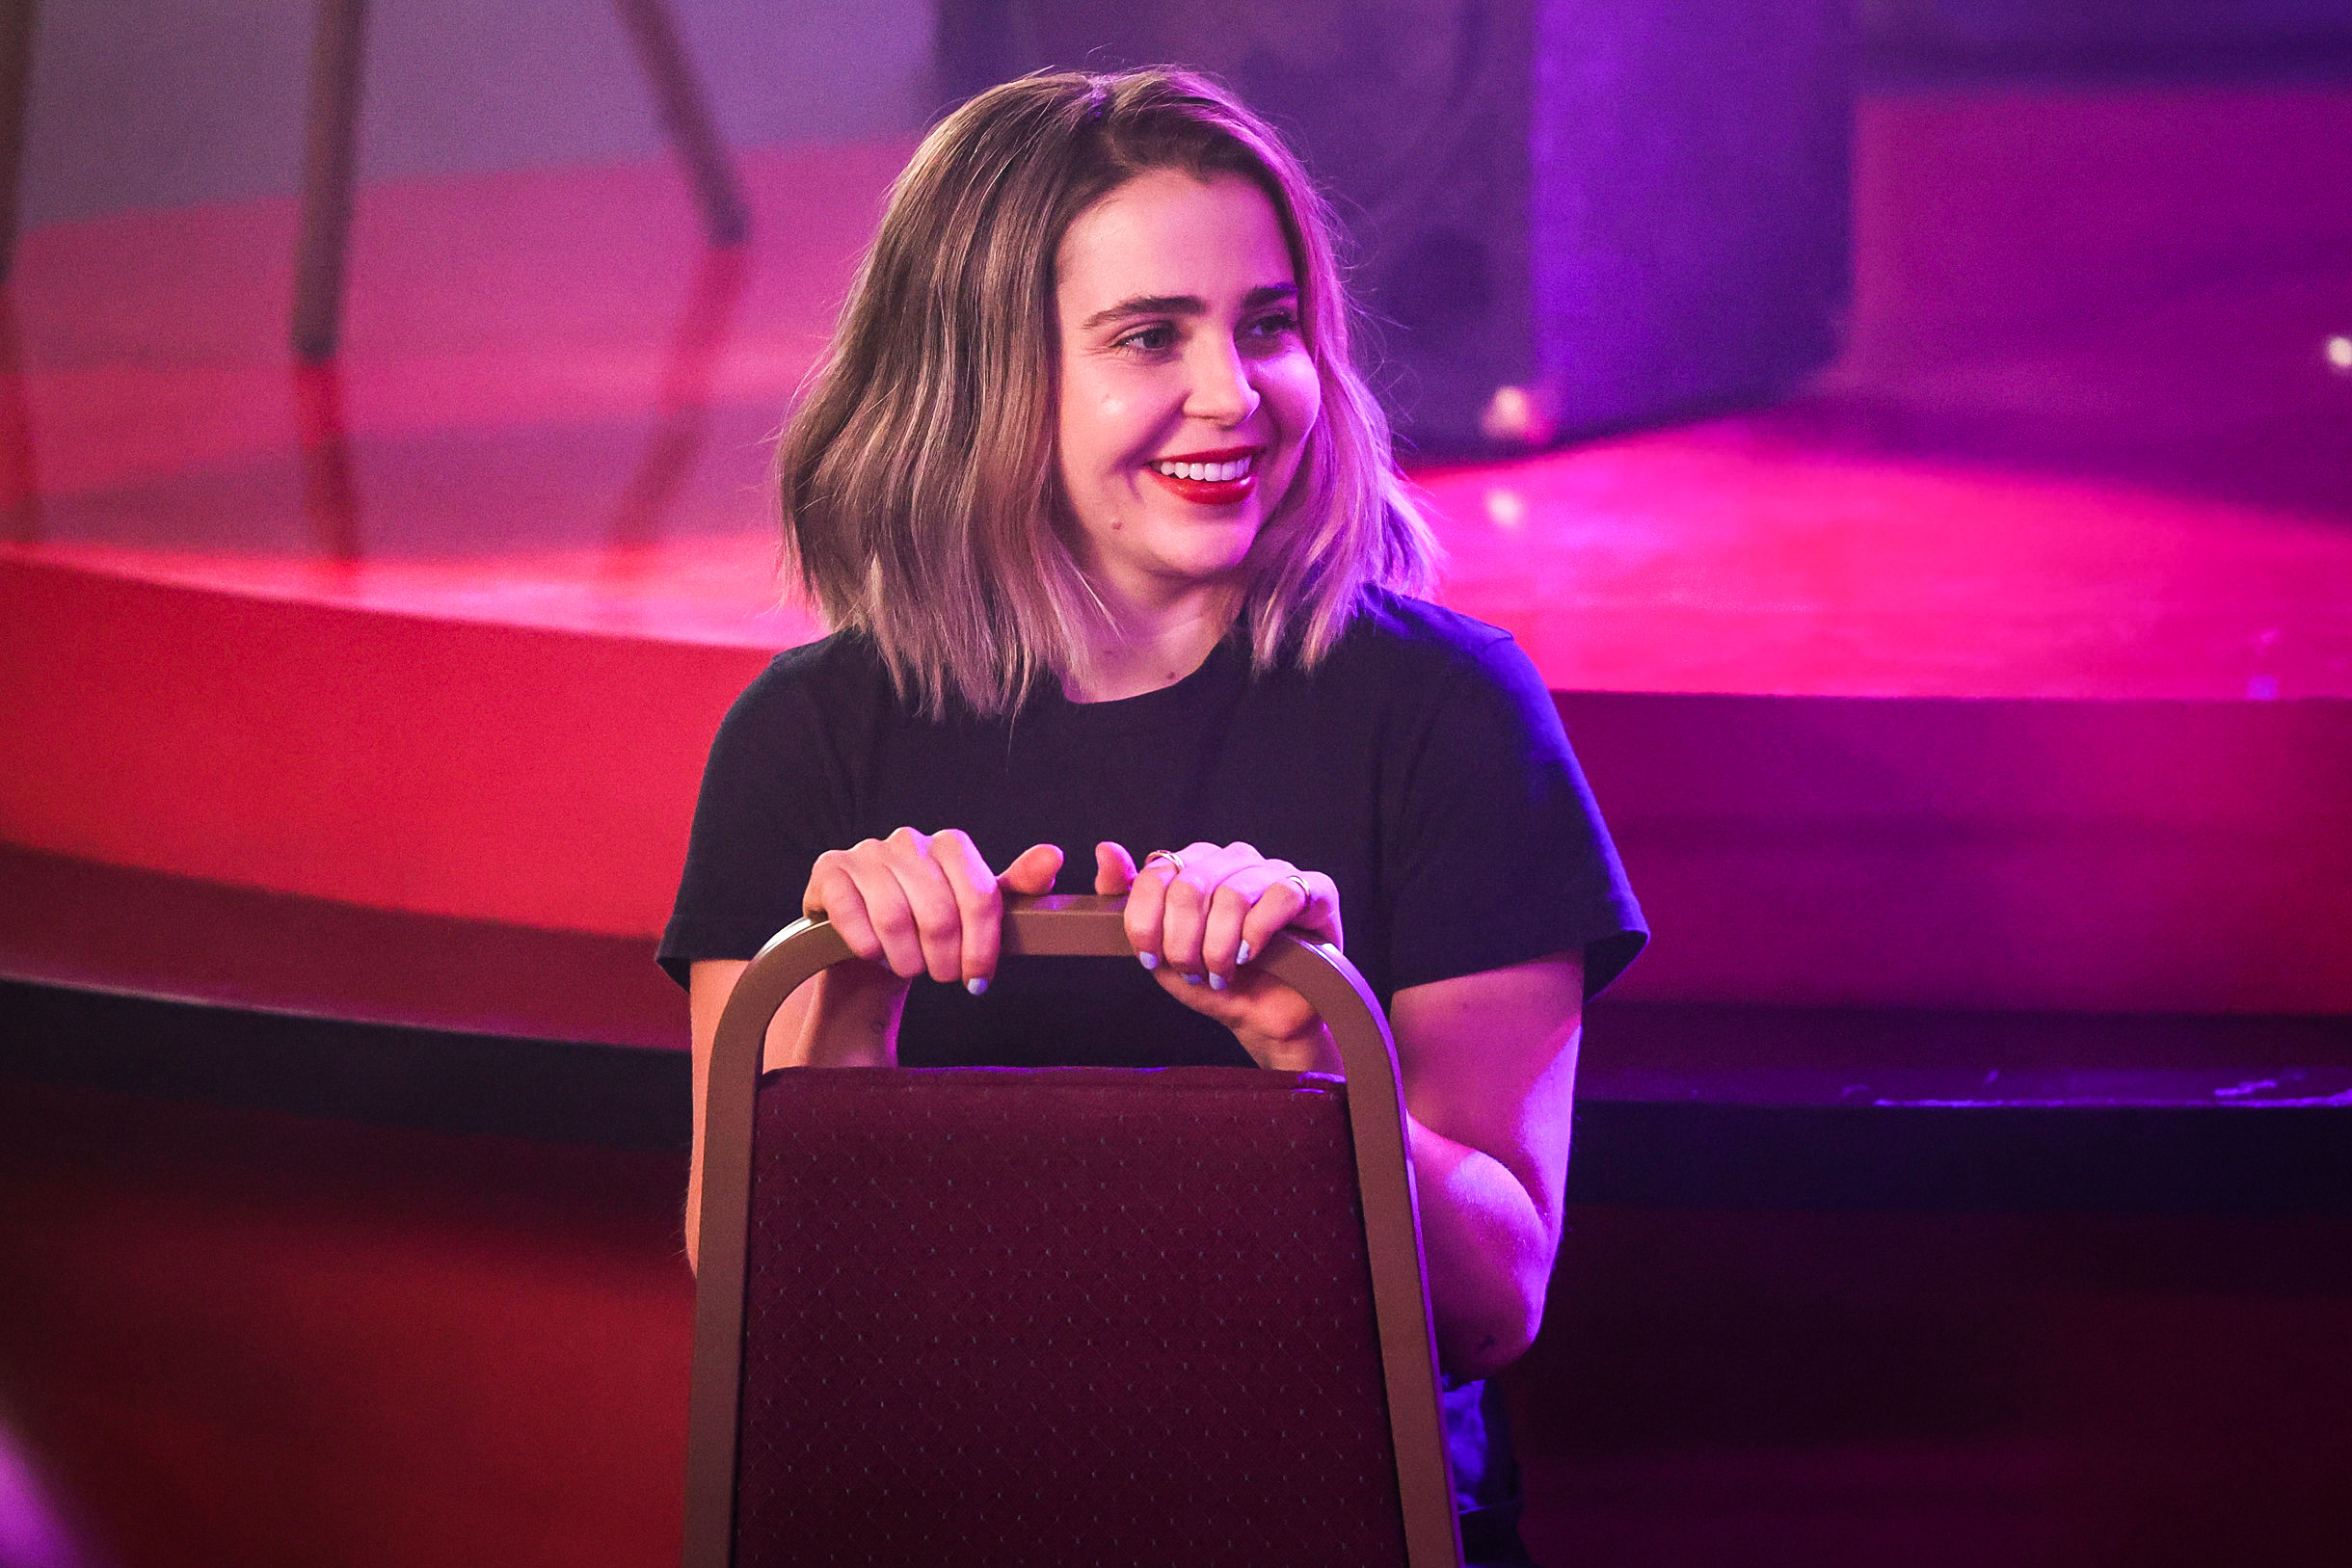 Mae Whitman reveals she's pansexual